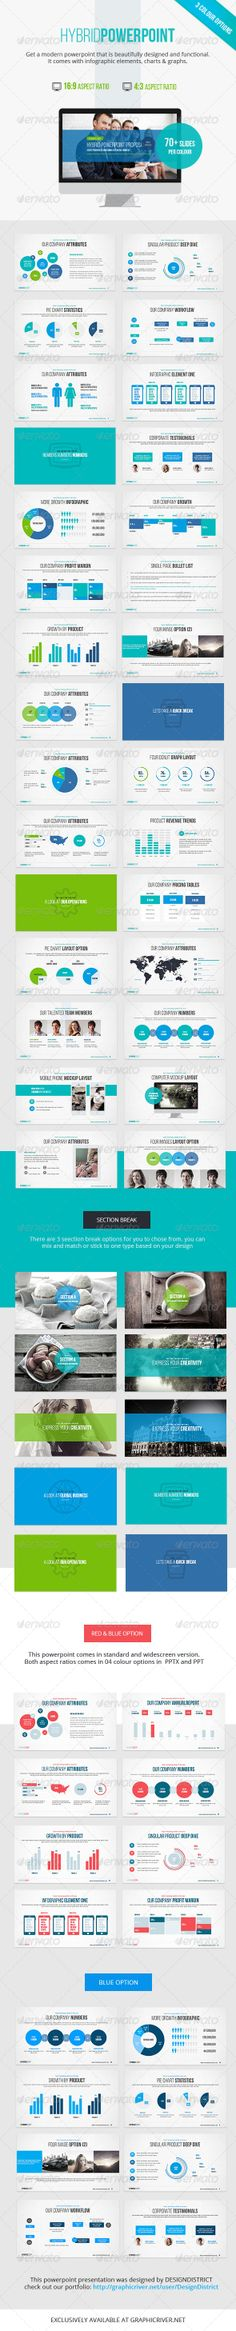 Hybrid Powerpoint Presentation - Business Powerpoint Templates